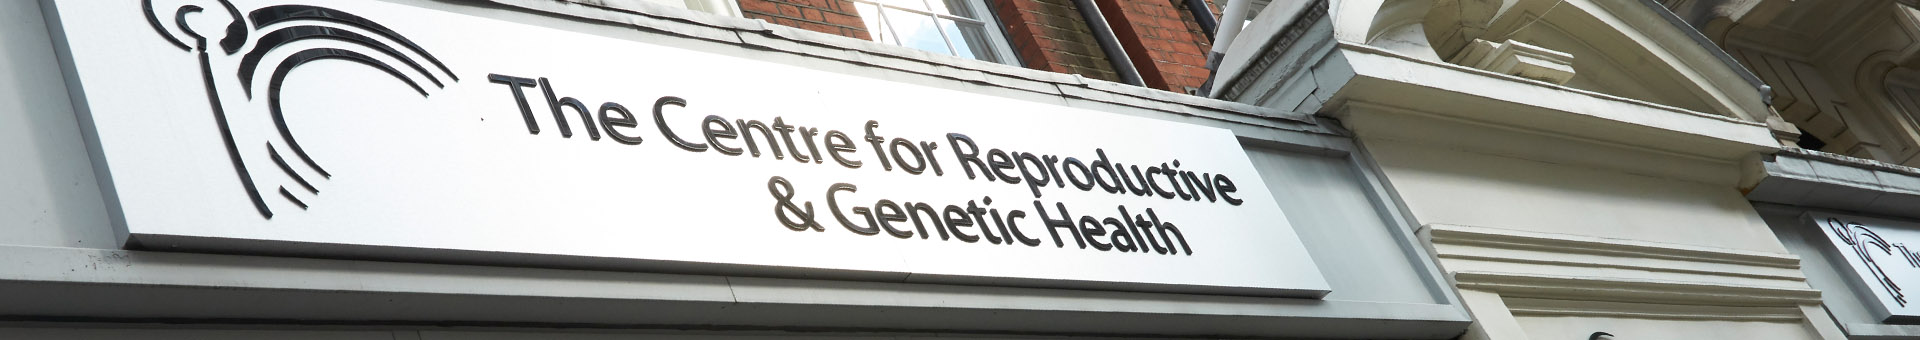 CRGH fertility clinic